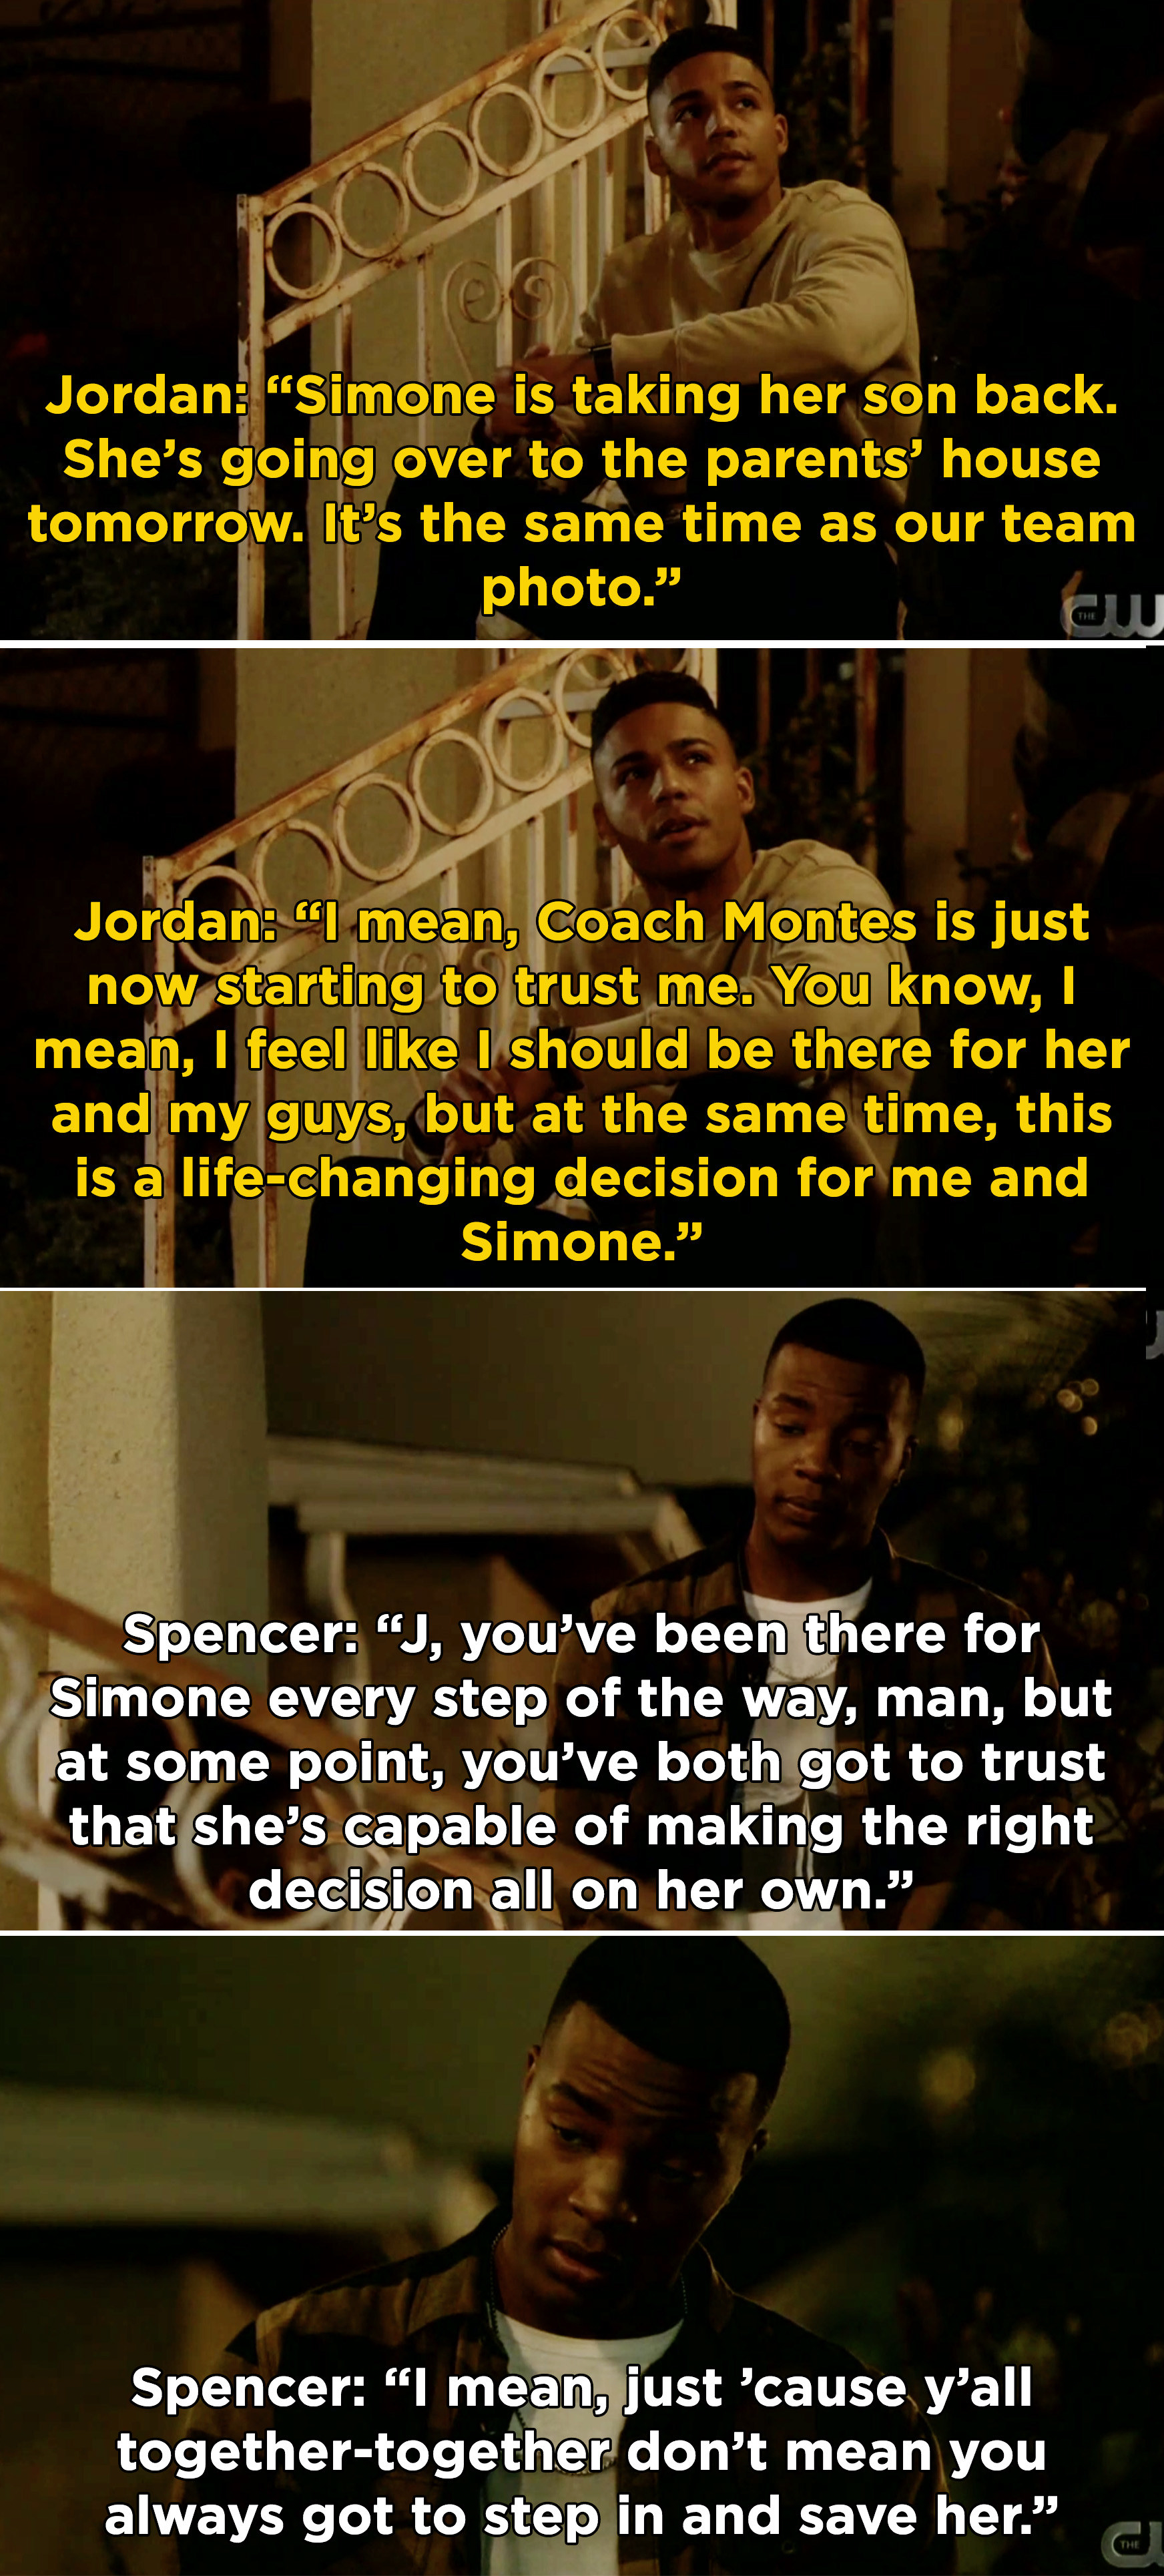 Jordan telling Spencer that Simone wants to take her son back and he's having a hard time balancing his relationship and the team